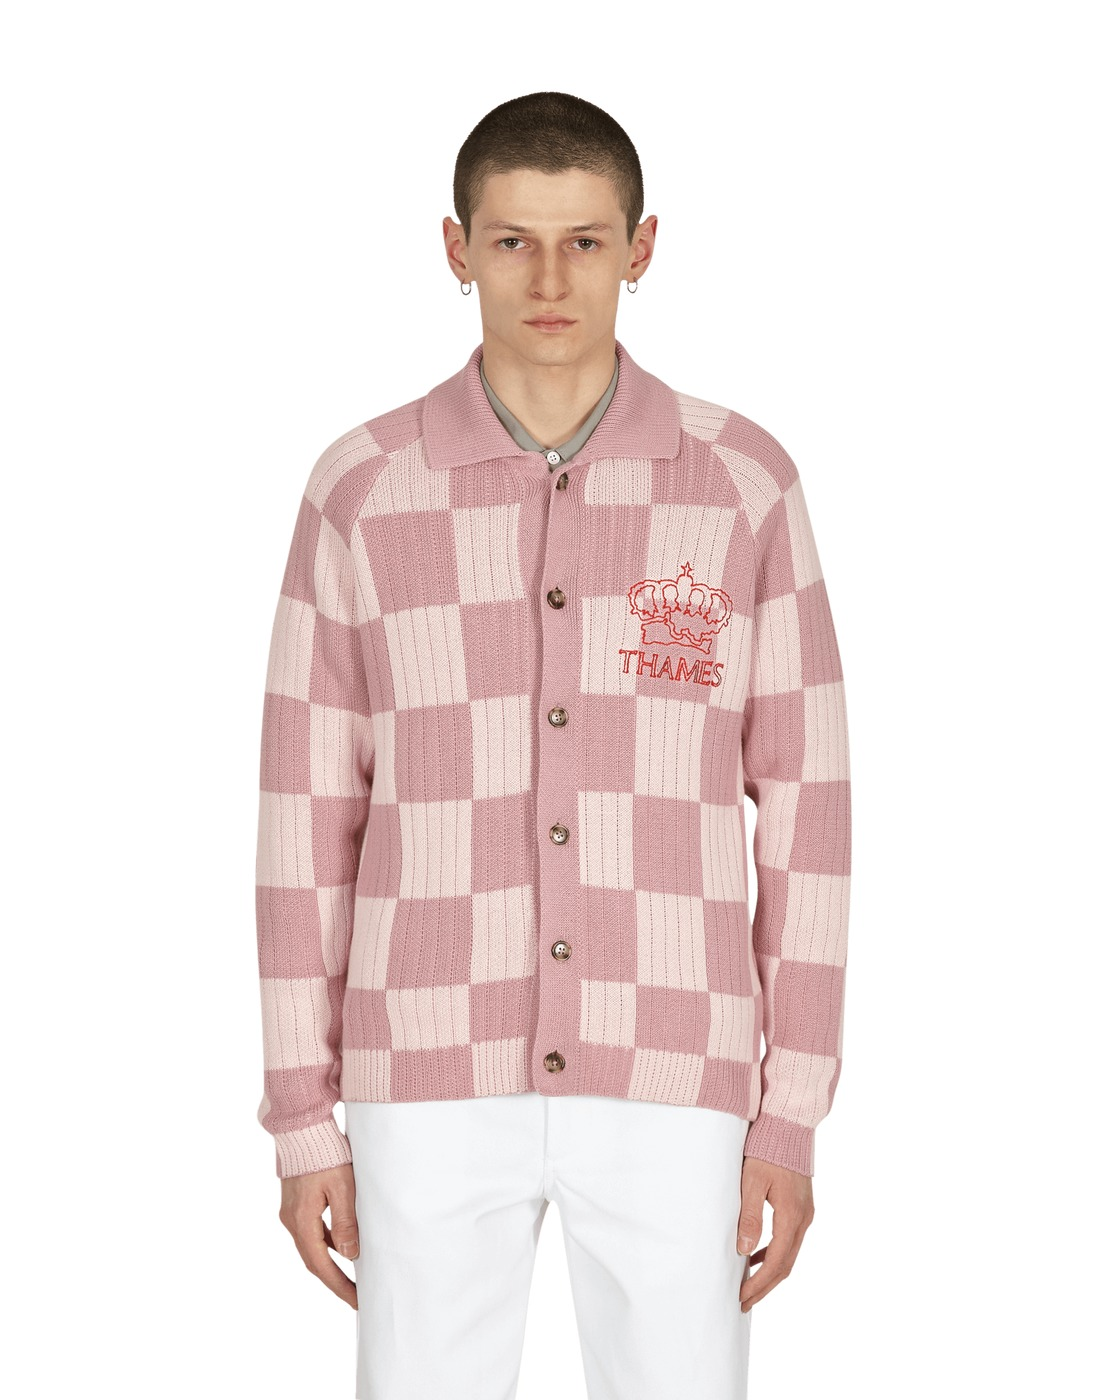 Photo: Thames London Le Cheq Sweater Pink Check